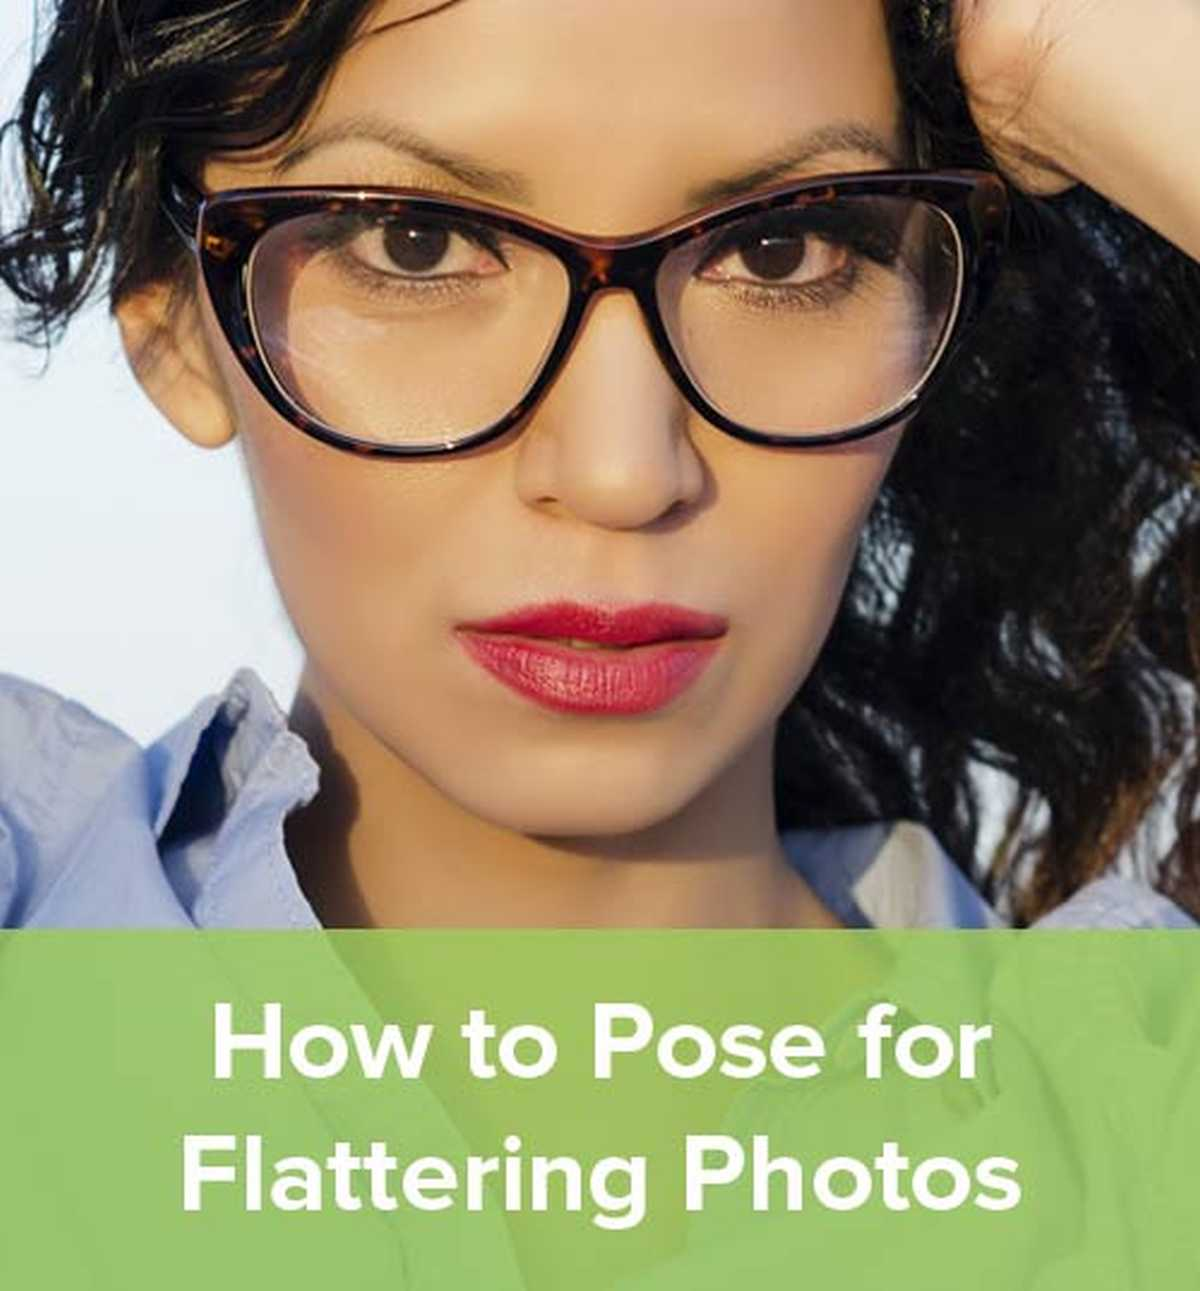 How to Pose for Flattering Profile Photos